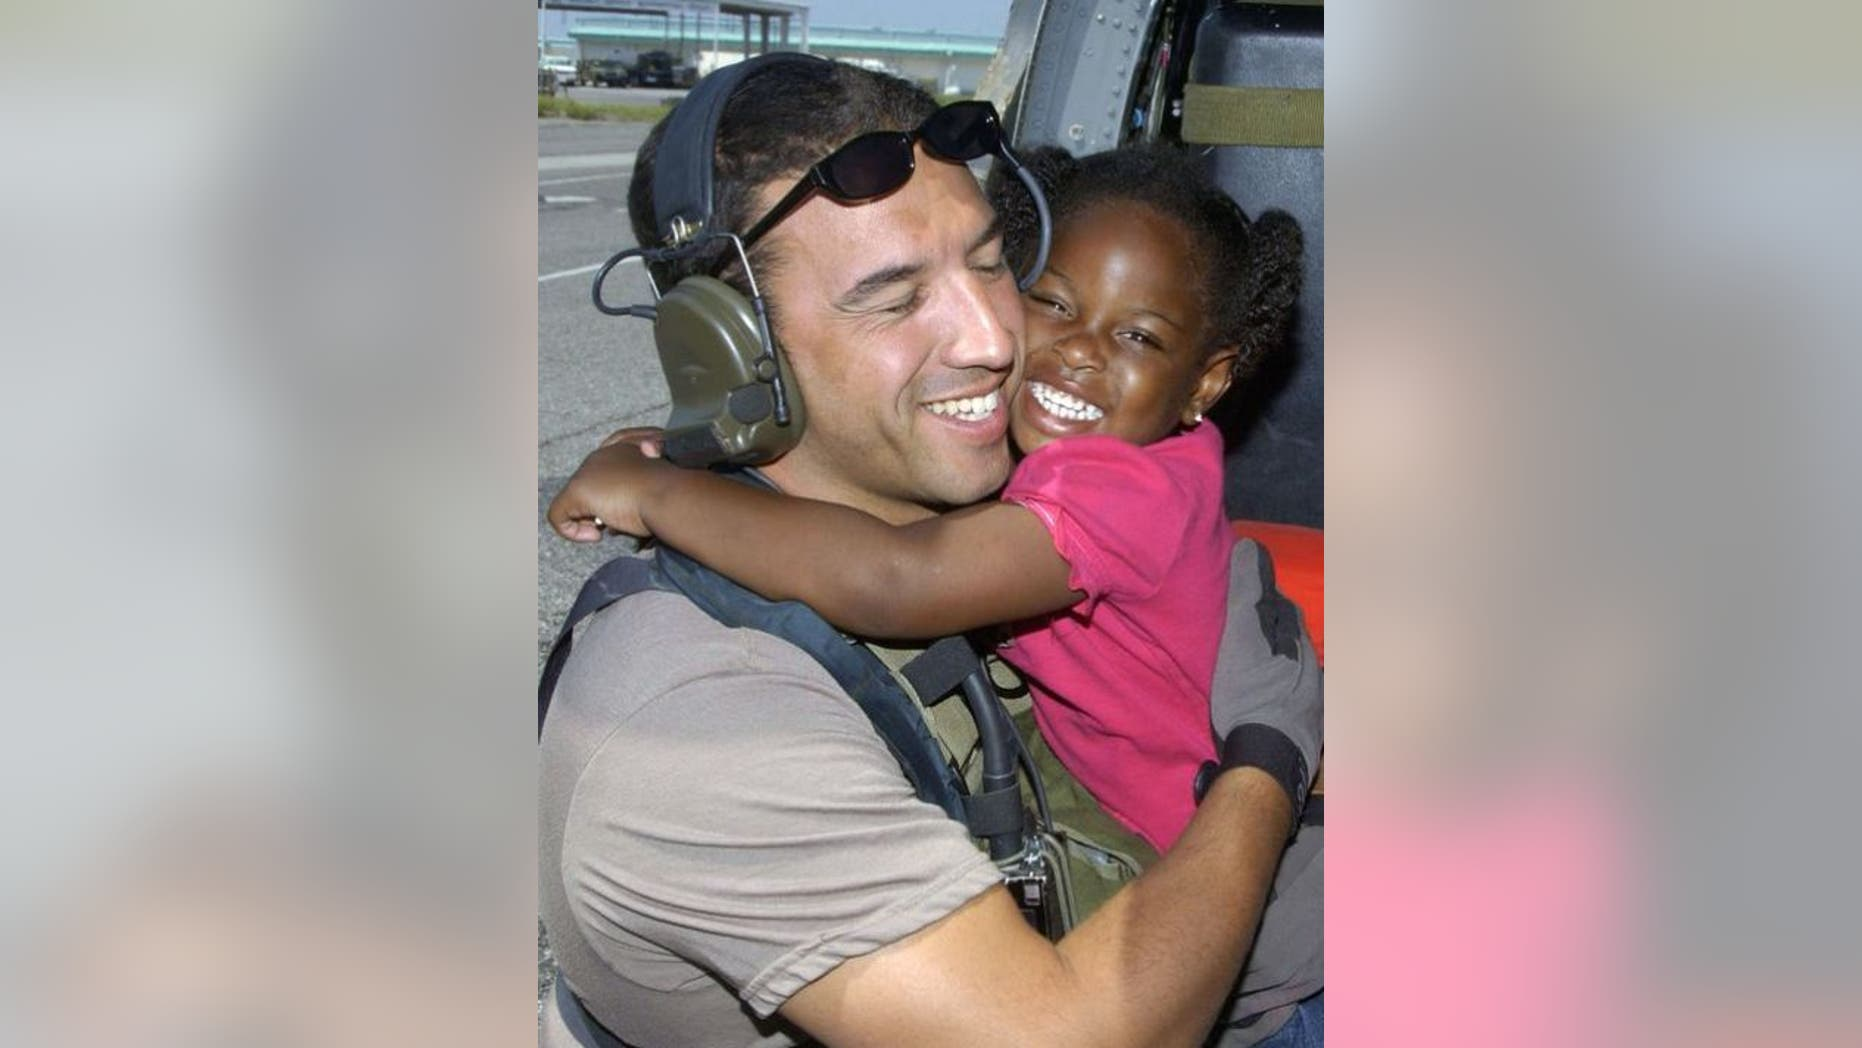 Air Force Reserve Master Sgt. Mike Maroney hugs 3-year-old he rescued in aftermath of Hurricane Katrina in 2005. (Credit: Air Force)